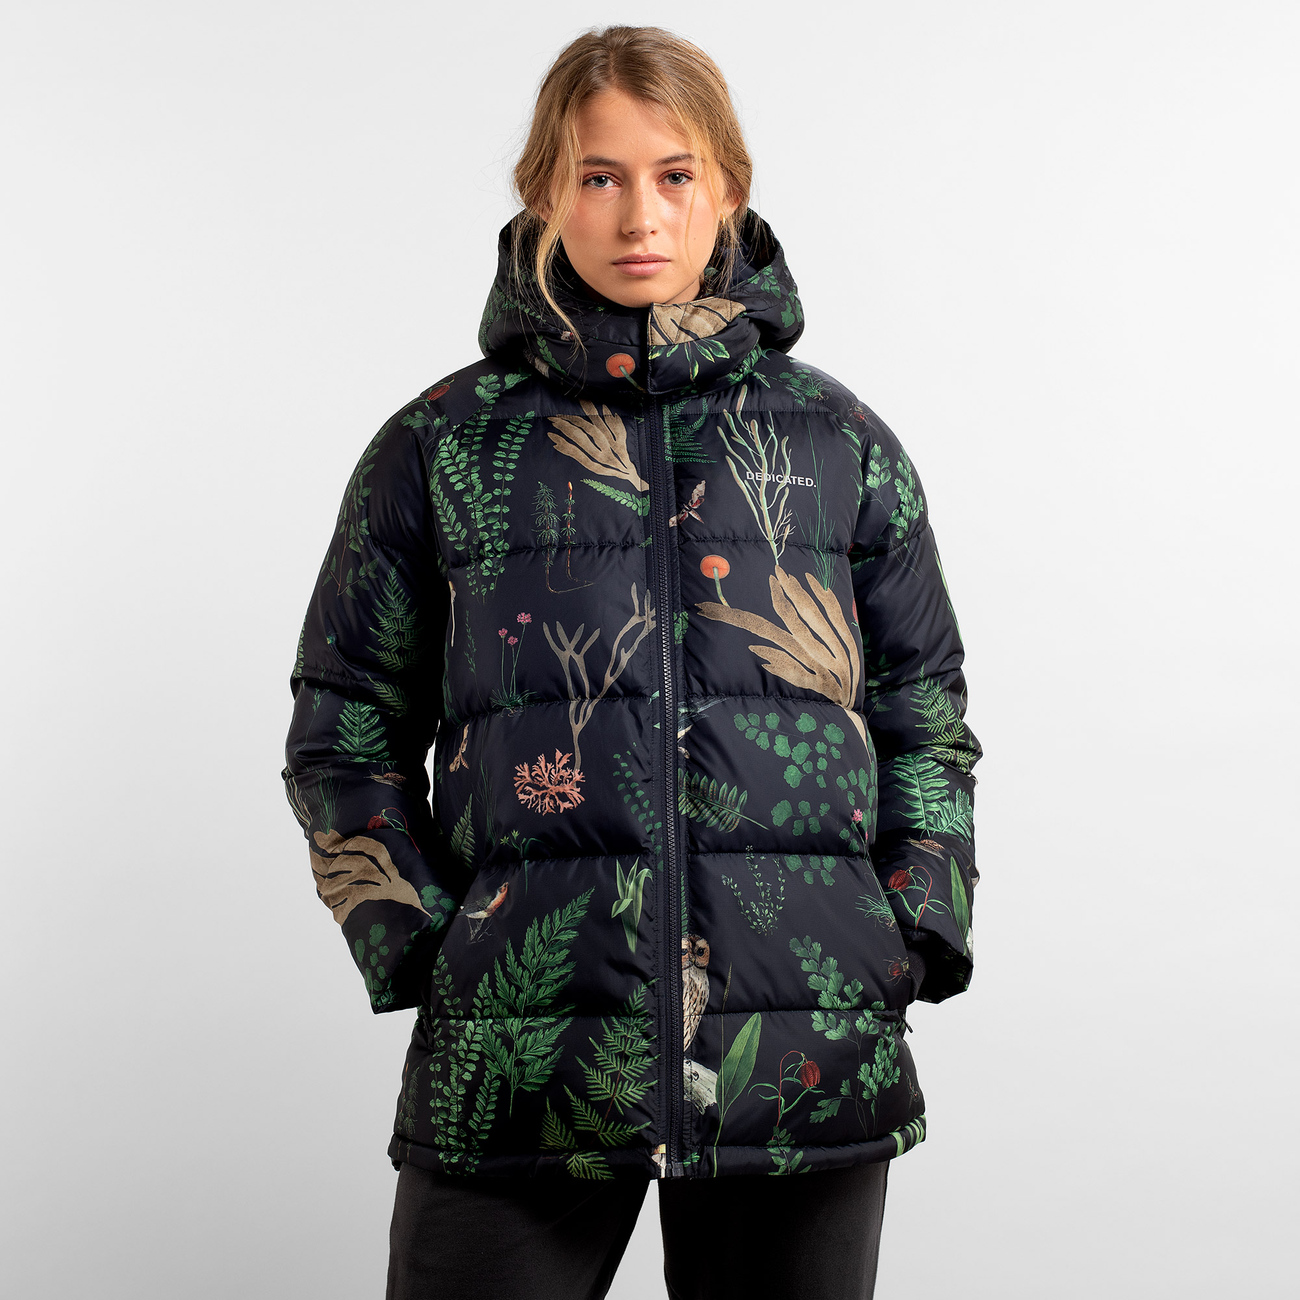 DEDICATED Puffer Jacket Boden Secret Garden